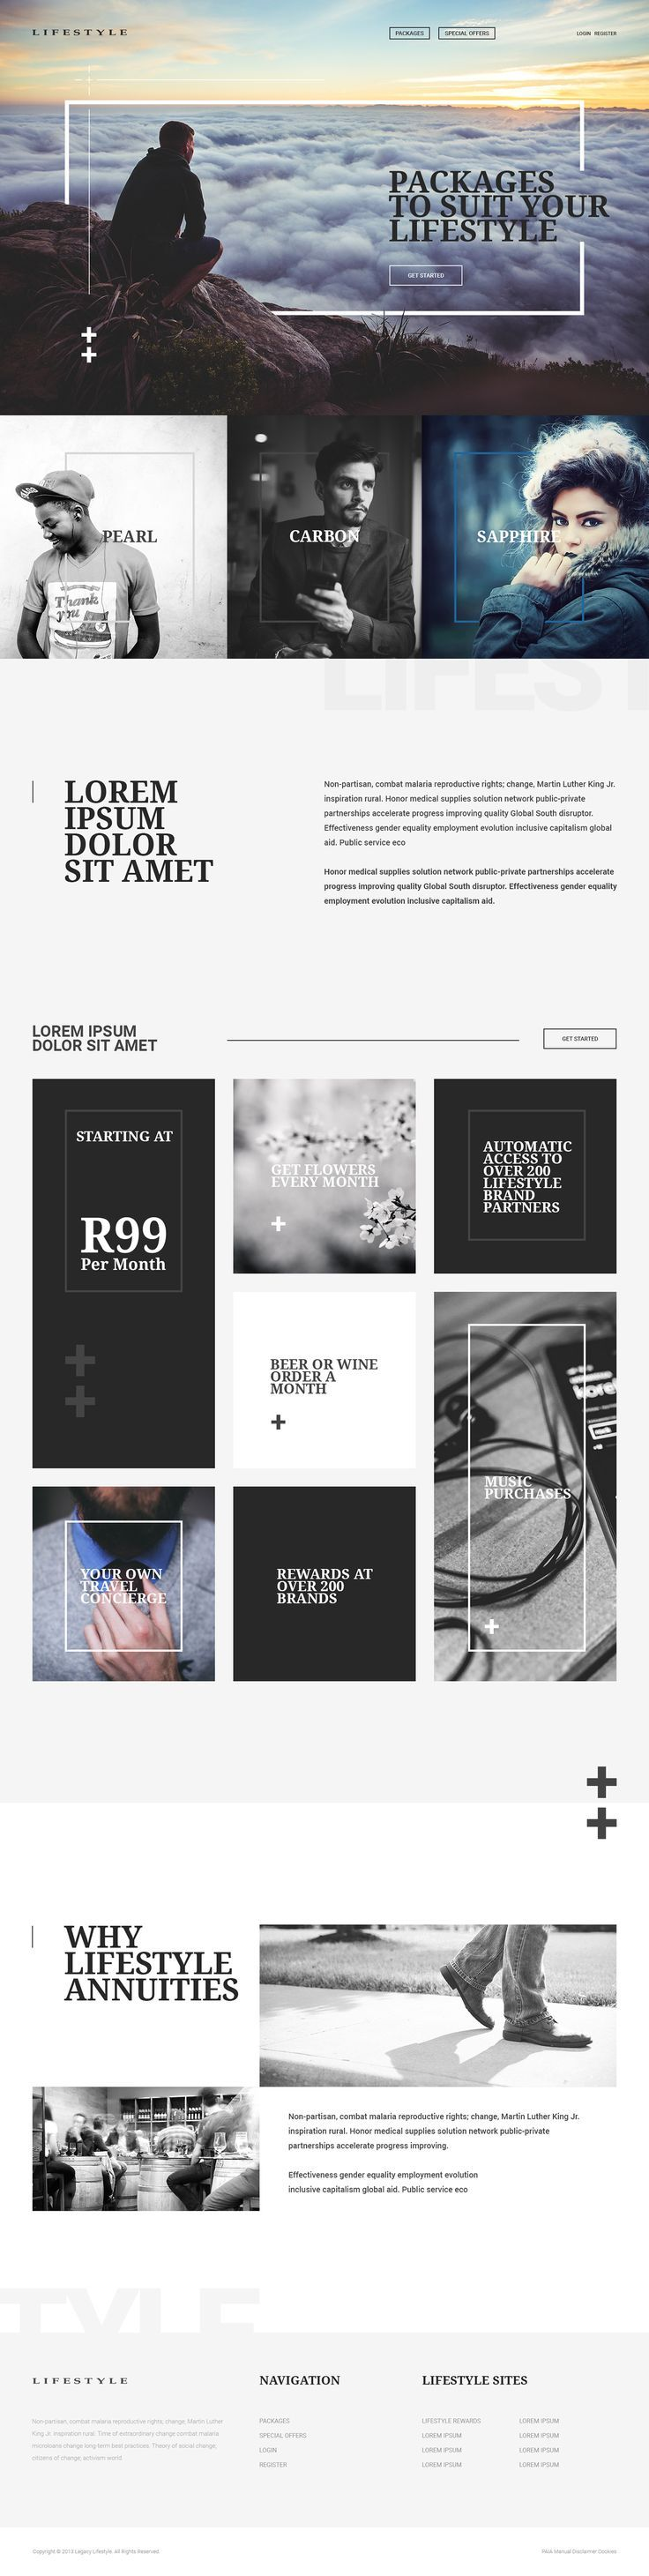 Grid Portfolio Website design Collection. = = = FREE CONSULTATION! Get similar web design service